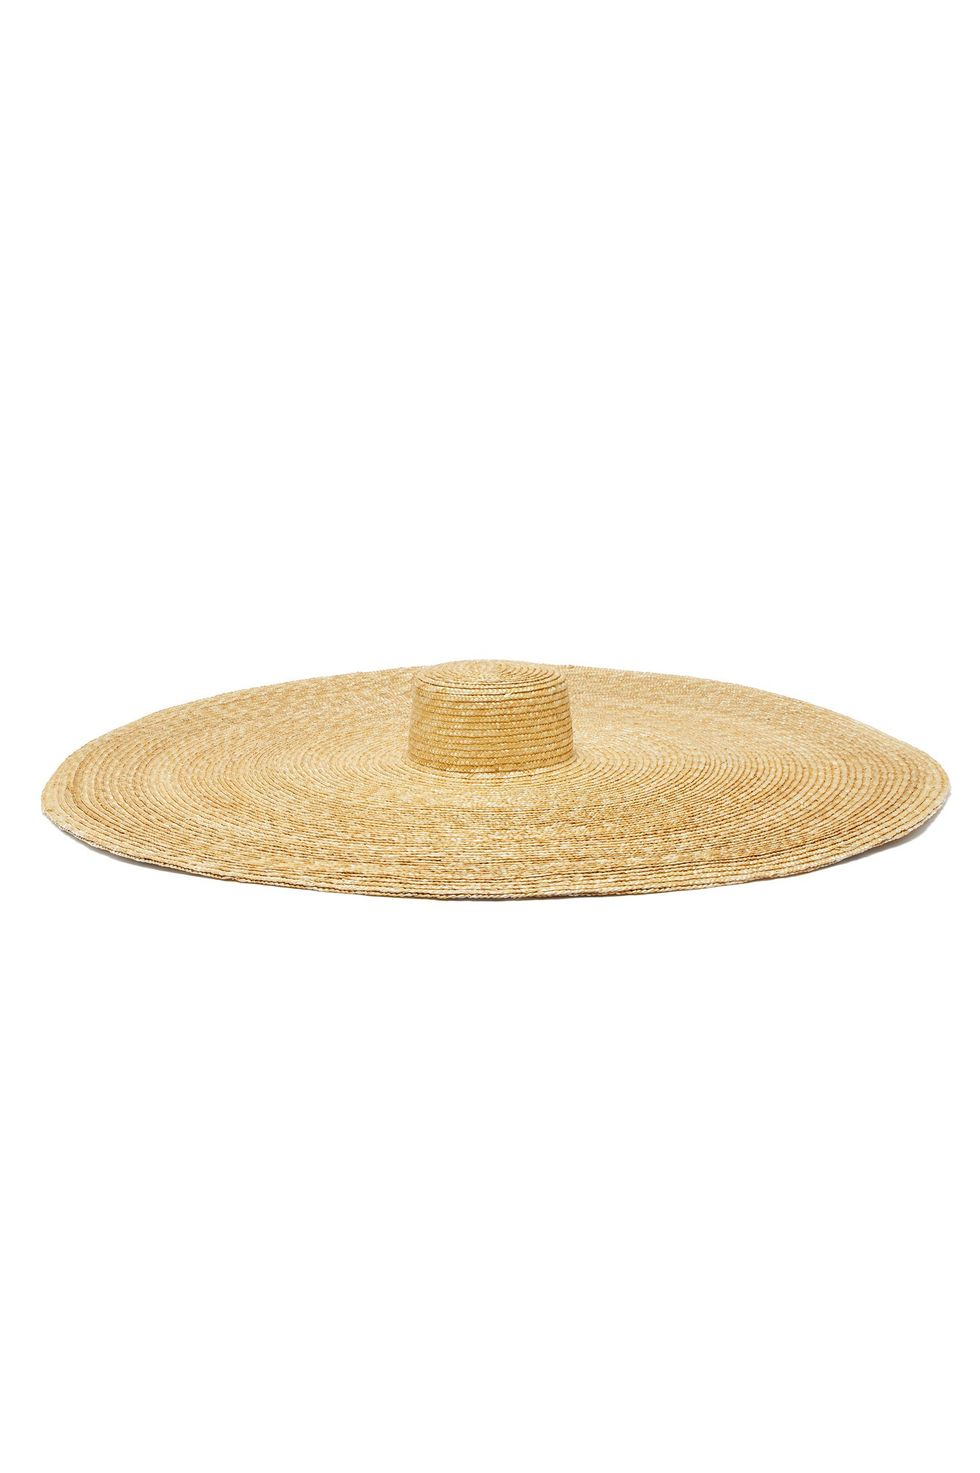 The oversized hat